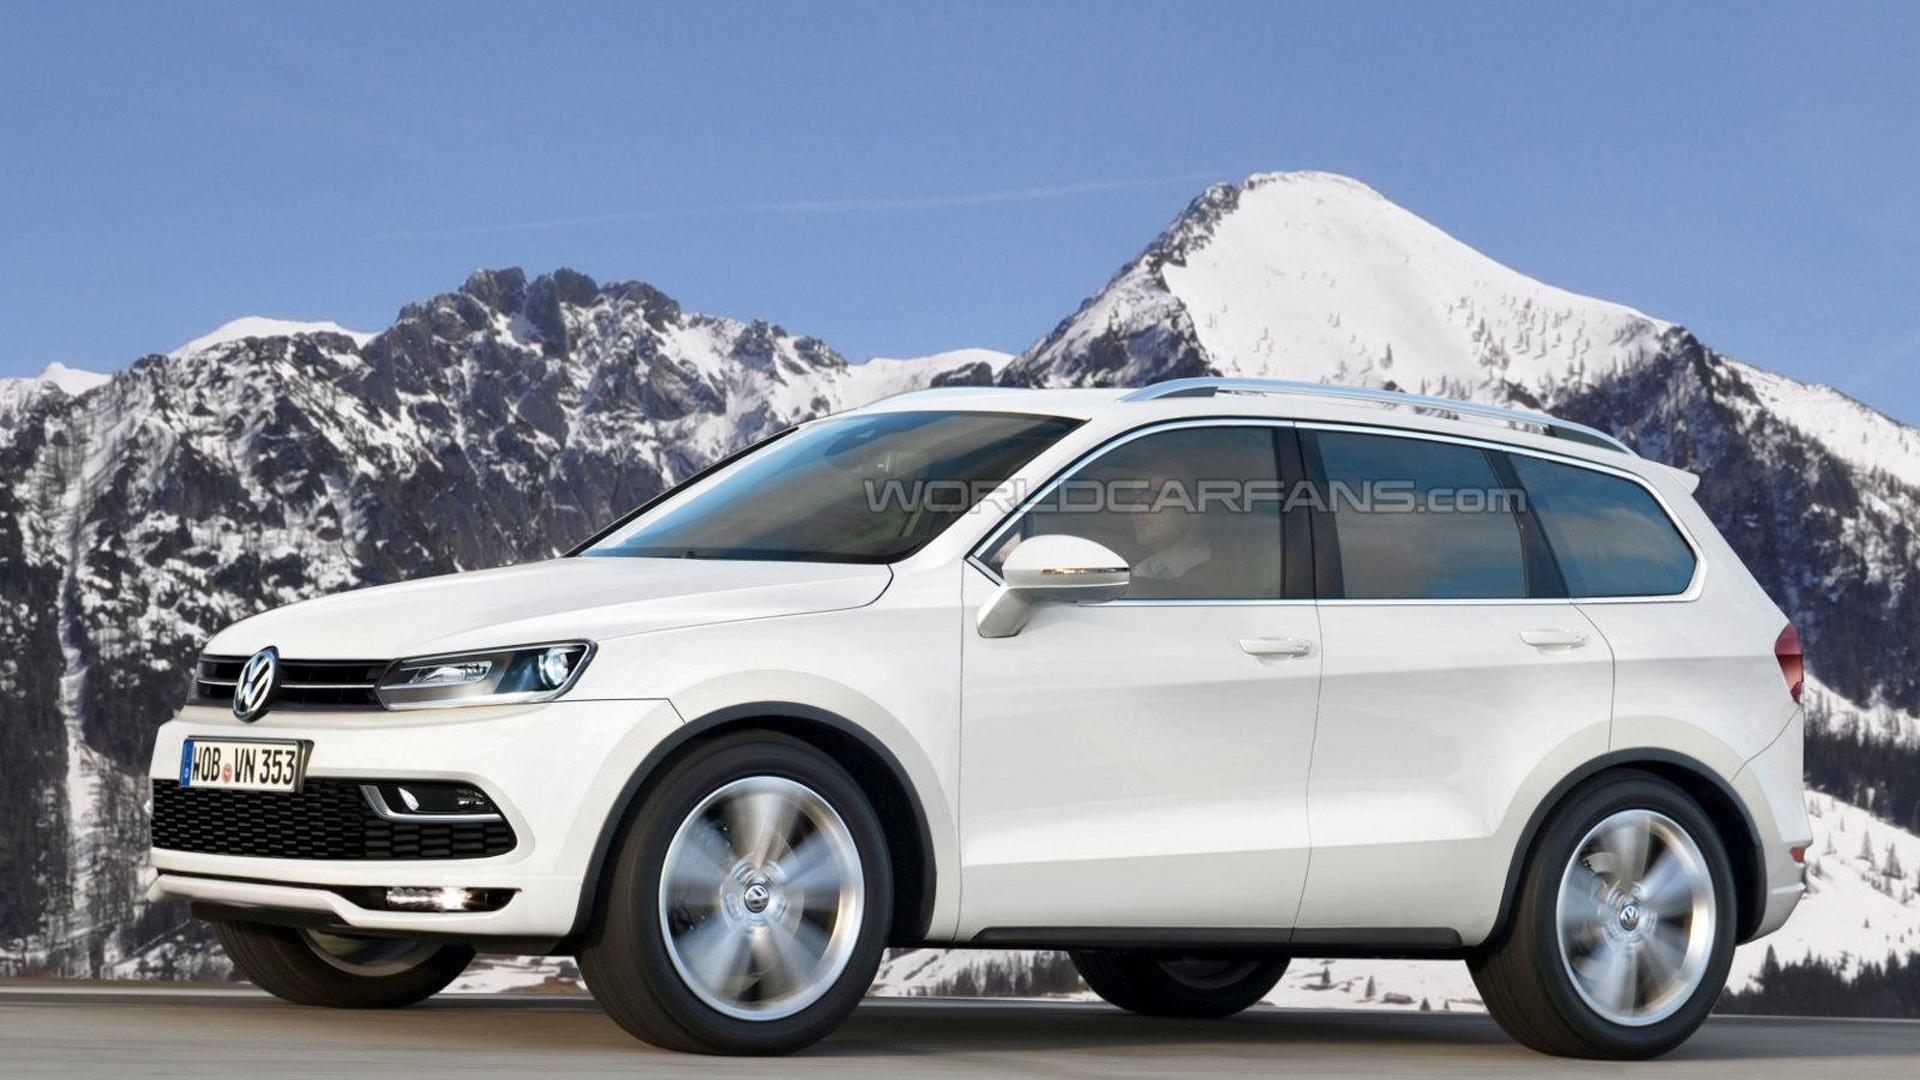 Volkswagen seven-seat crossover coming to Detroit, Routan could be dropped - report